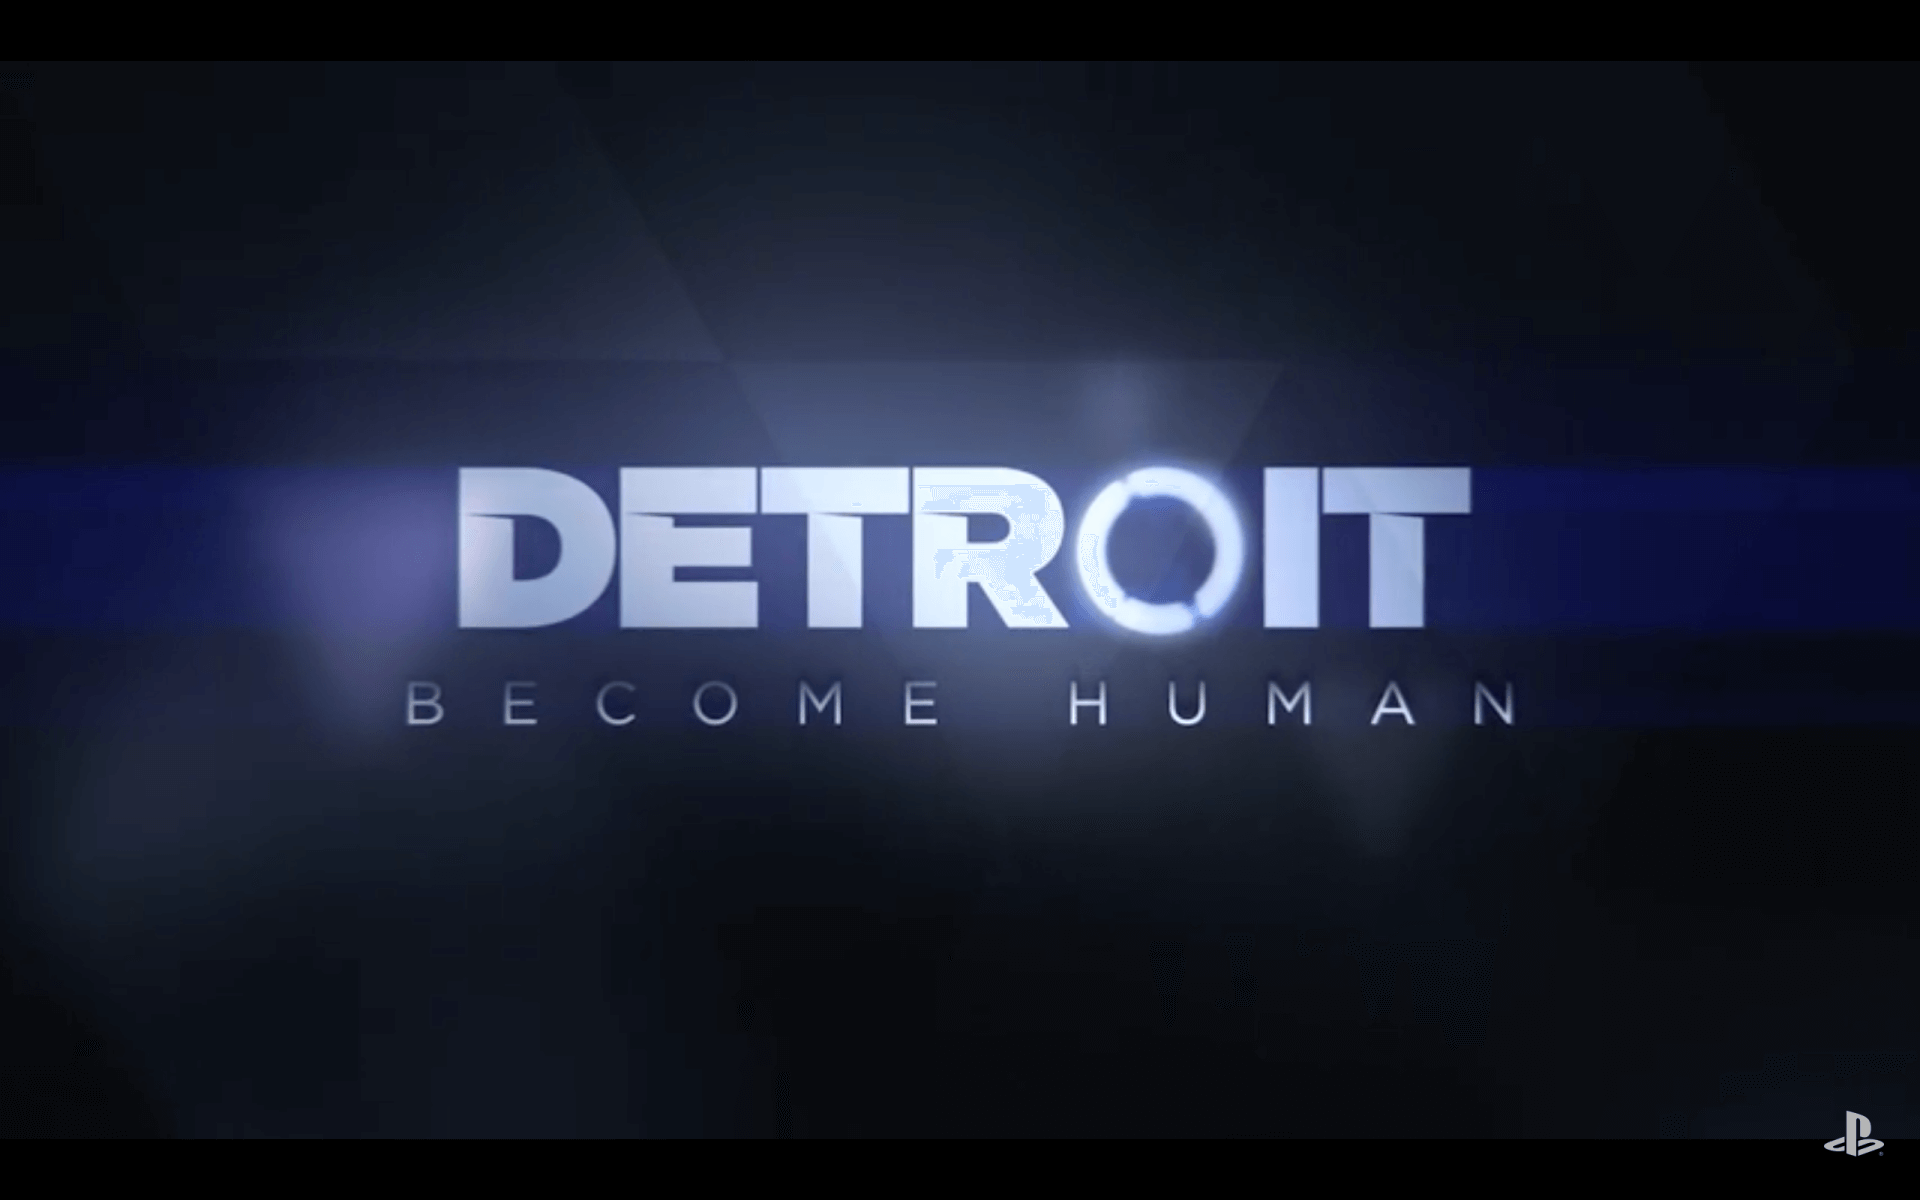 E3 2016: Detroit: Become Human Gameplay Shown